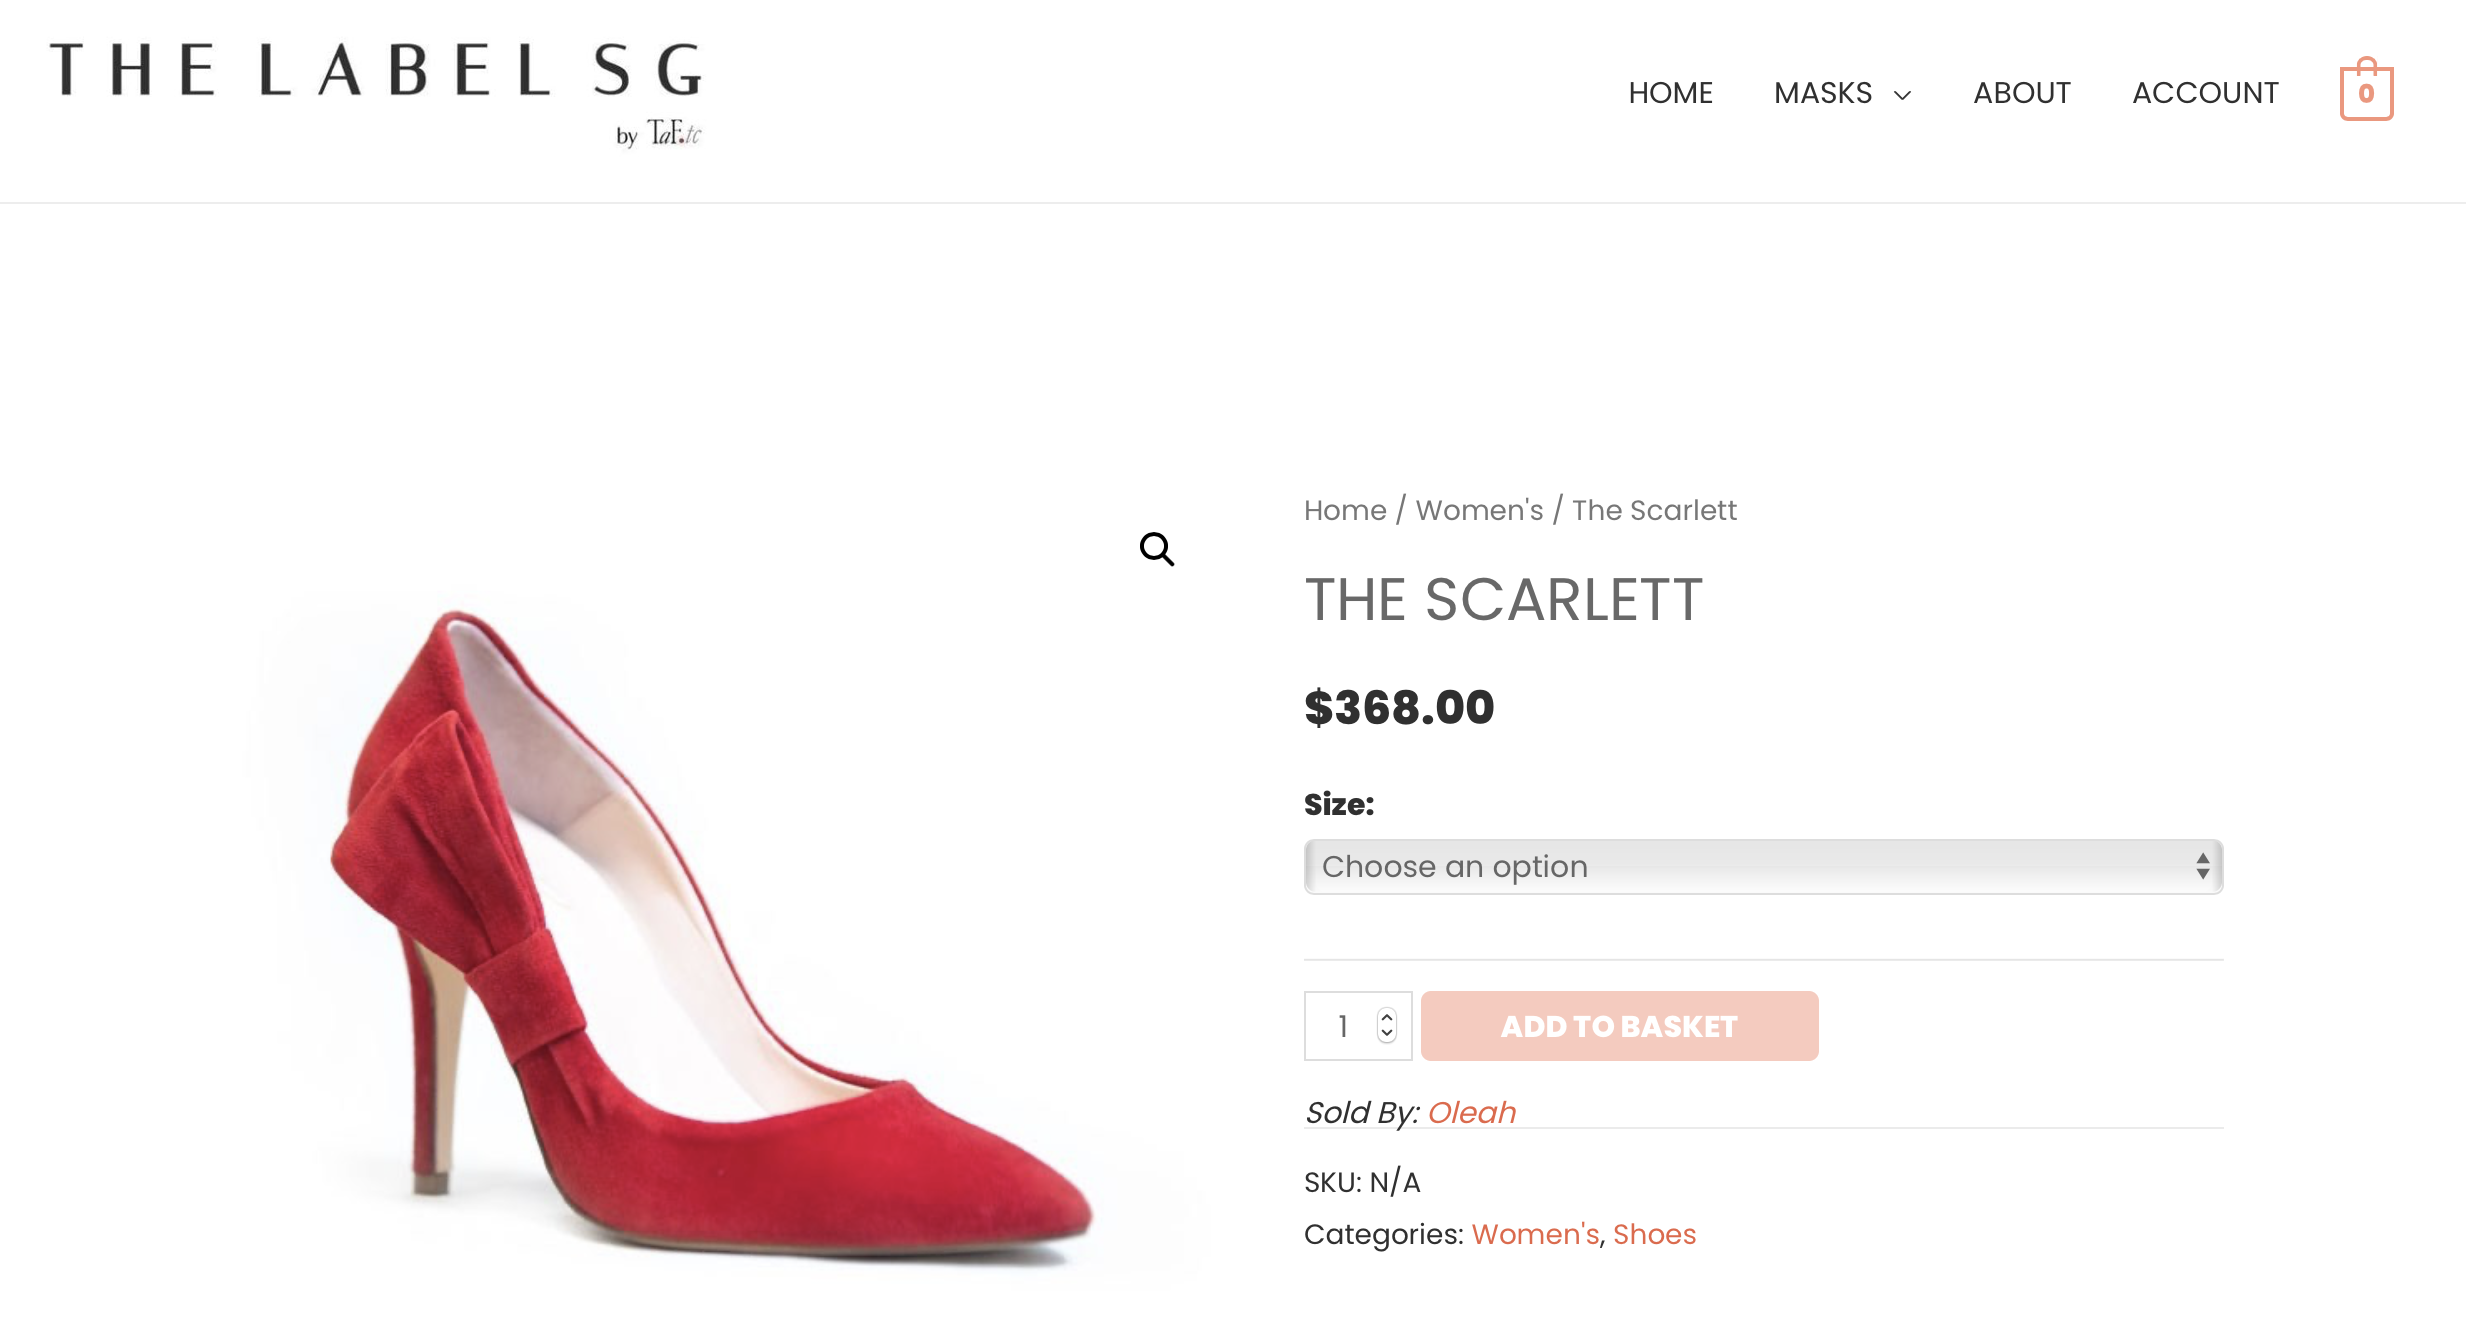 THE LABEL SG | Oleah's Shoe | The Scarlett